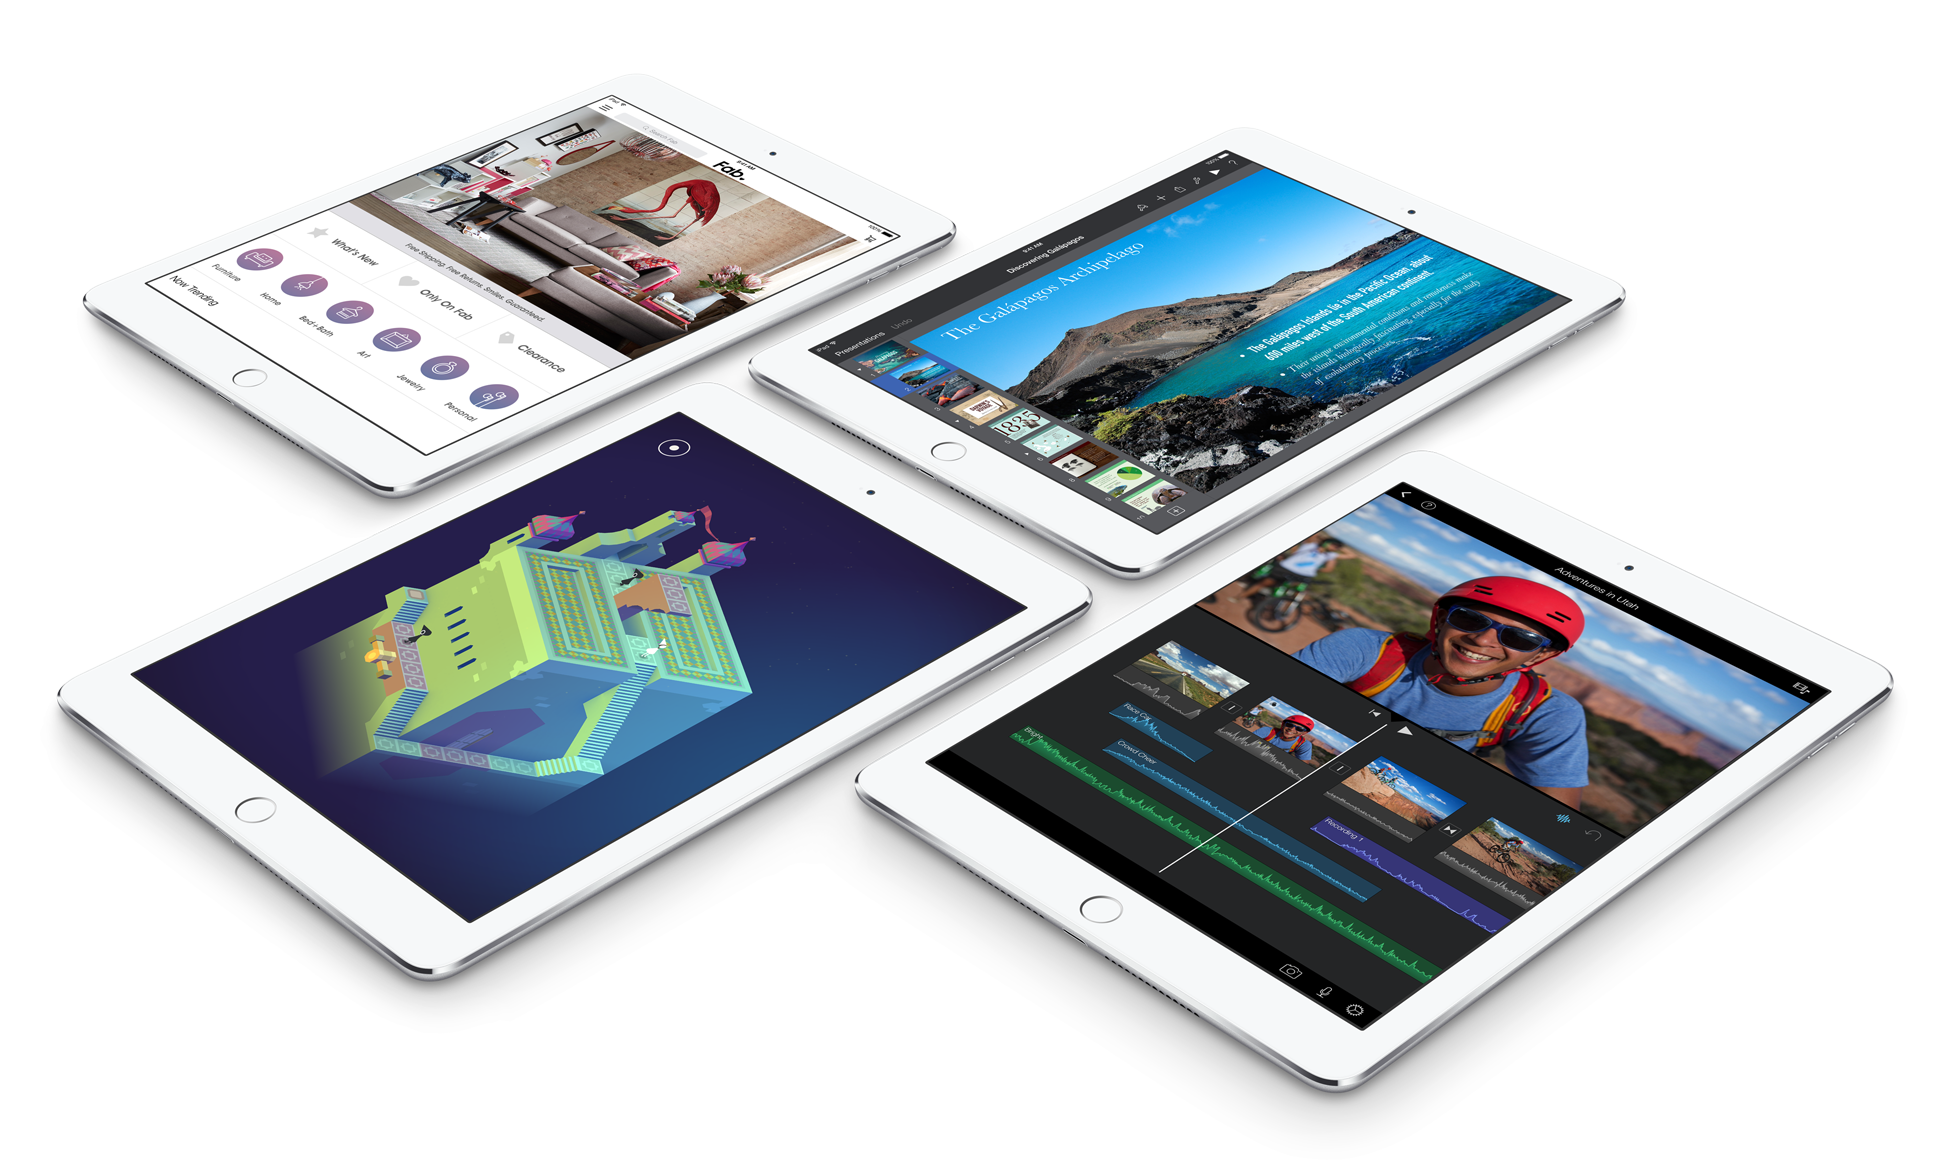 iPad Air 2 apps